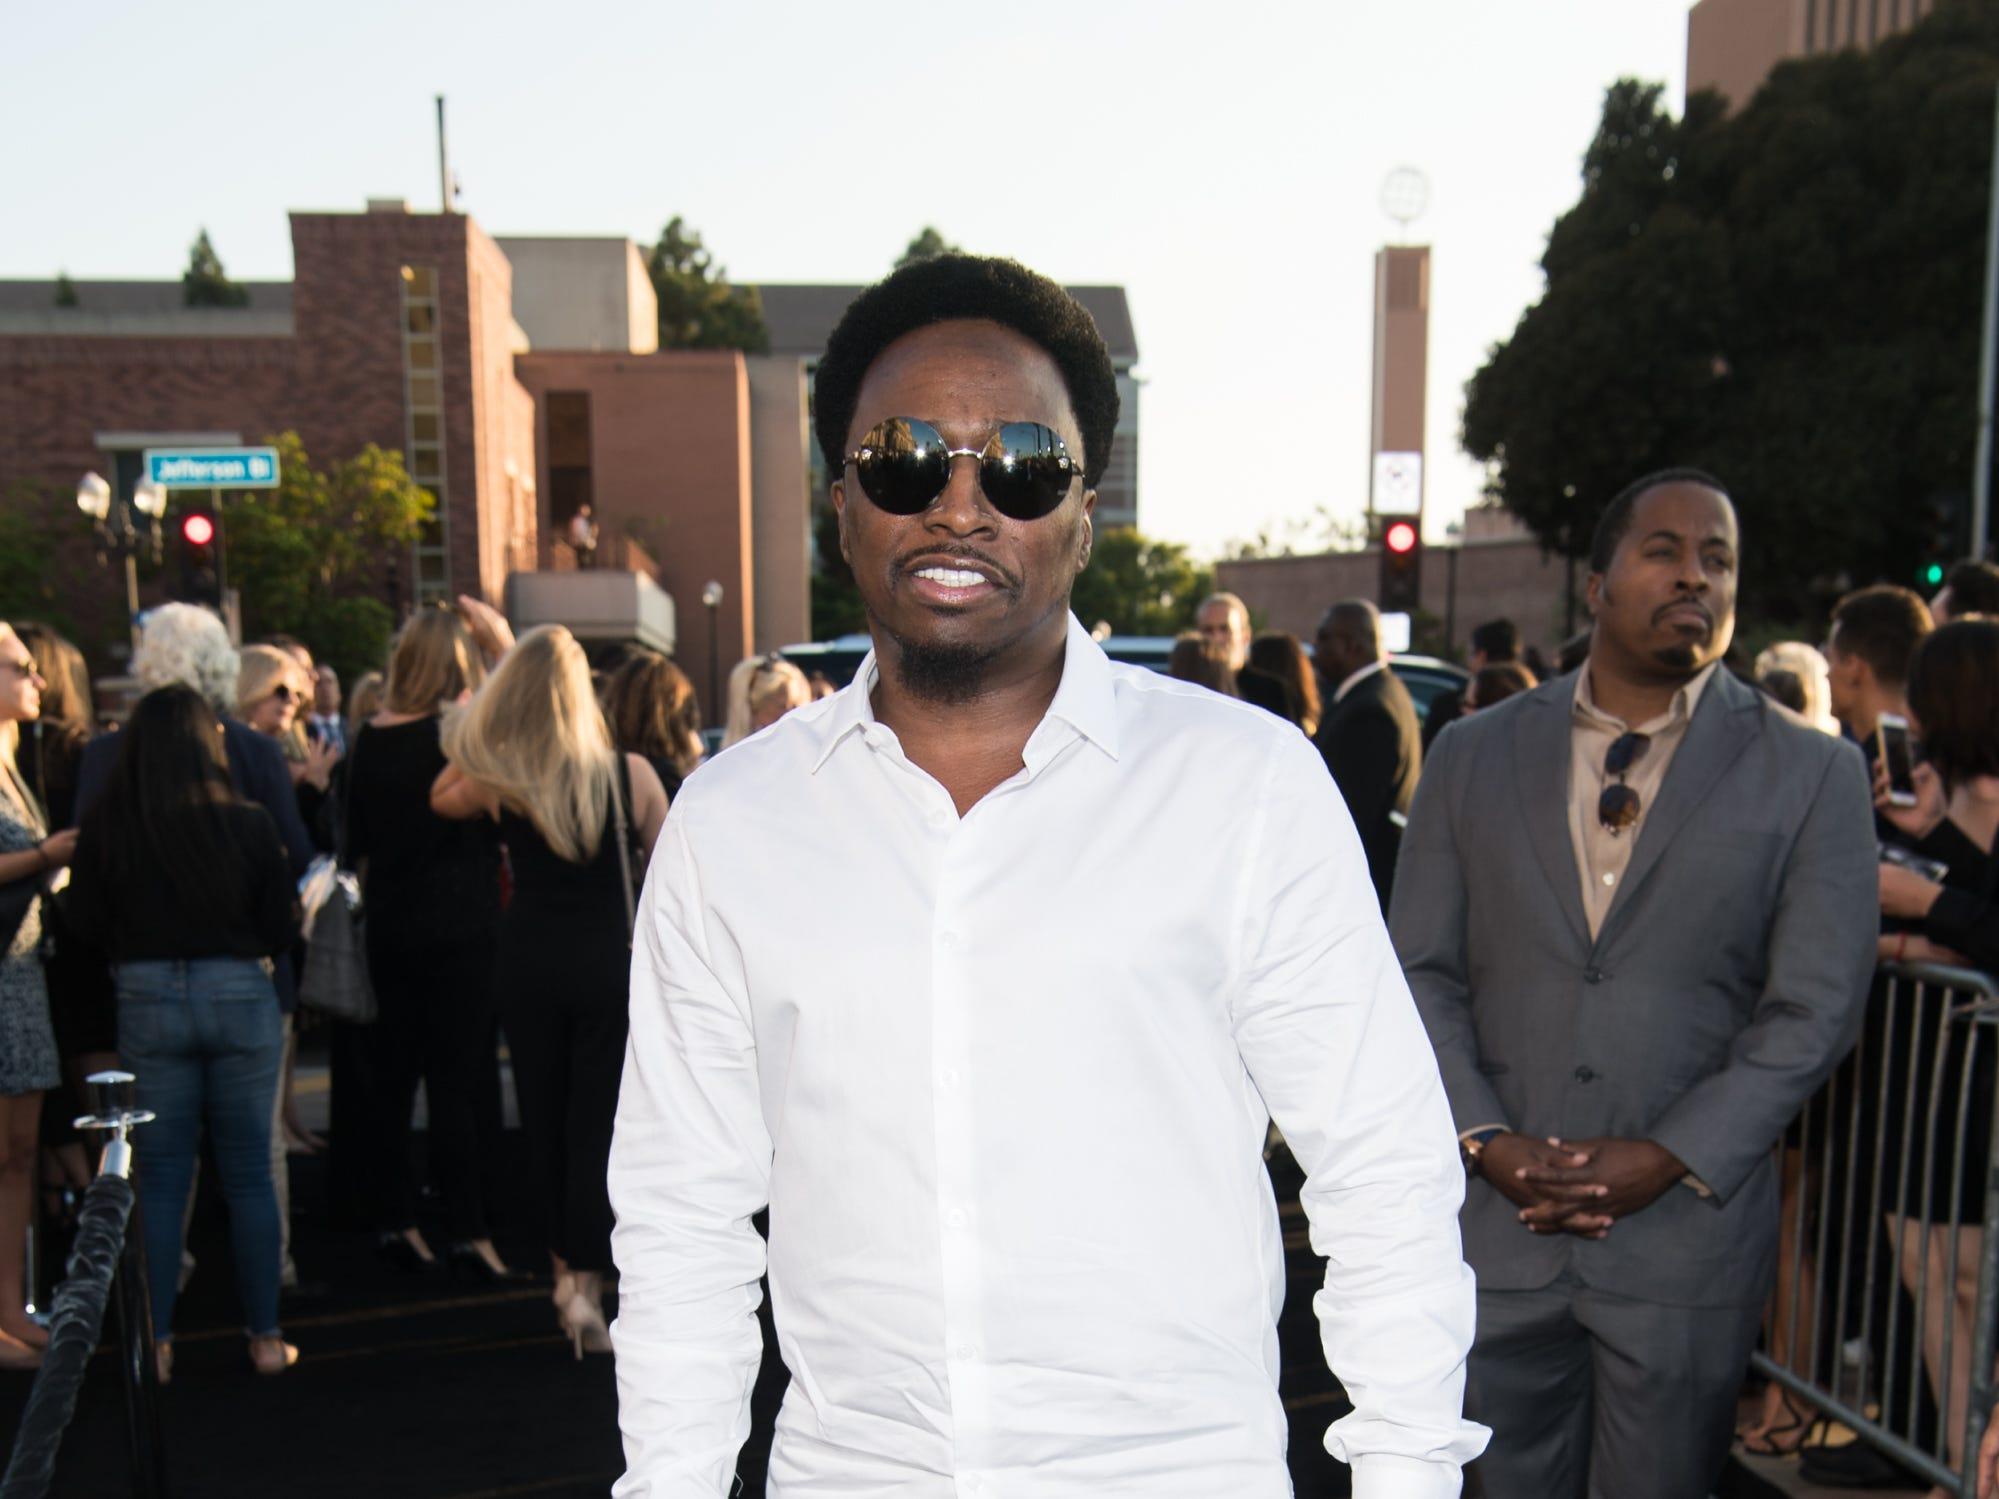 "LOS ANGELES, CA - SEPTEMBER 24:  Eddie Griffin attends the premiere of Warner Bros. Pictures' ""A Star Is Born"" at The Shrine Auditorium on September 24, 2018 in Los Angeles, California.  (Photo by Emma McIntyre/Getty Images) ORG XMIT: 775229471 ORIG FILE ID: 1039801350"